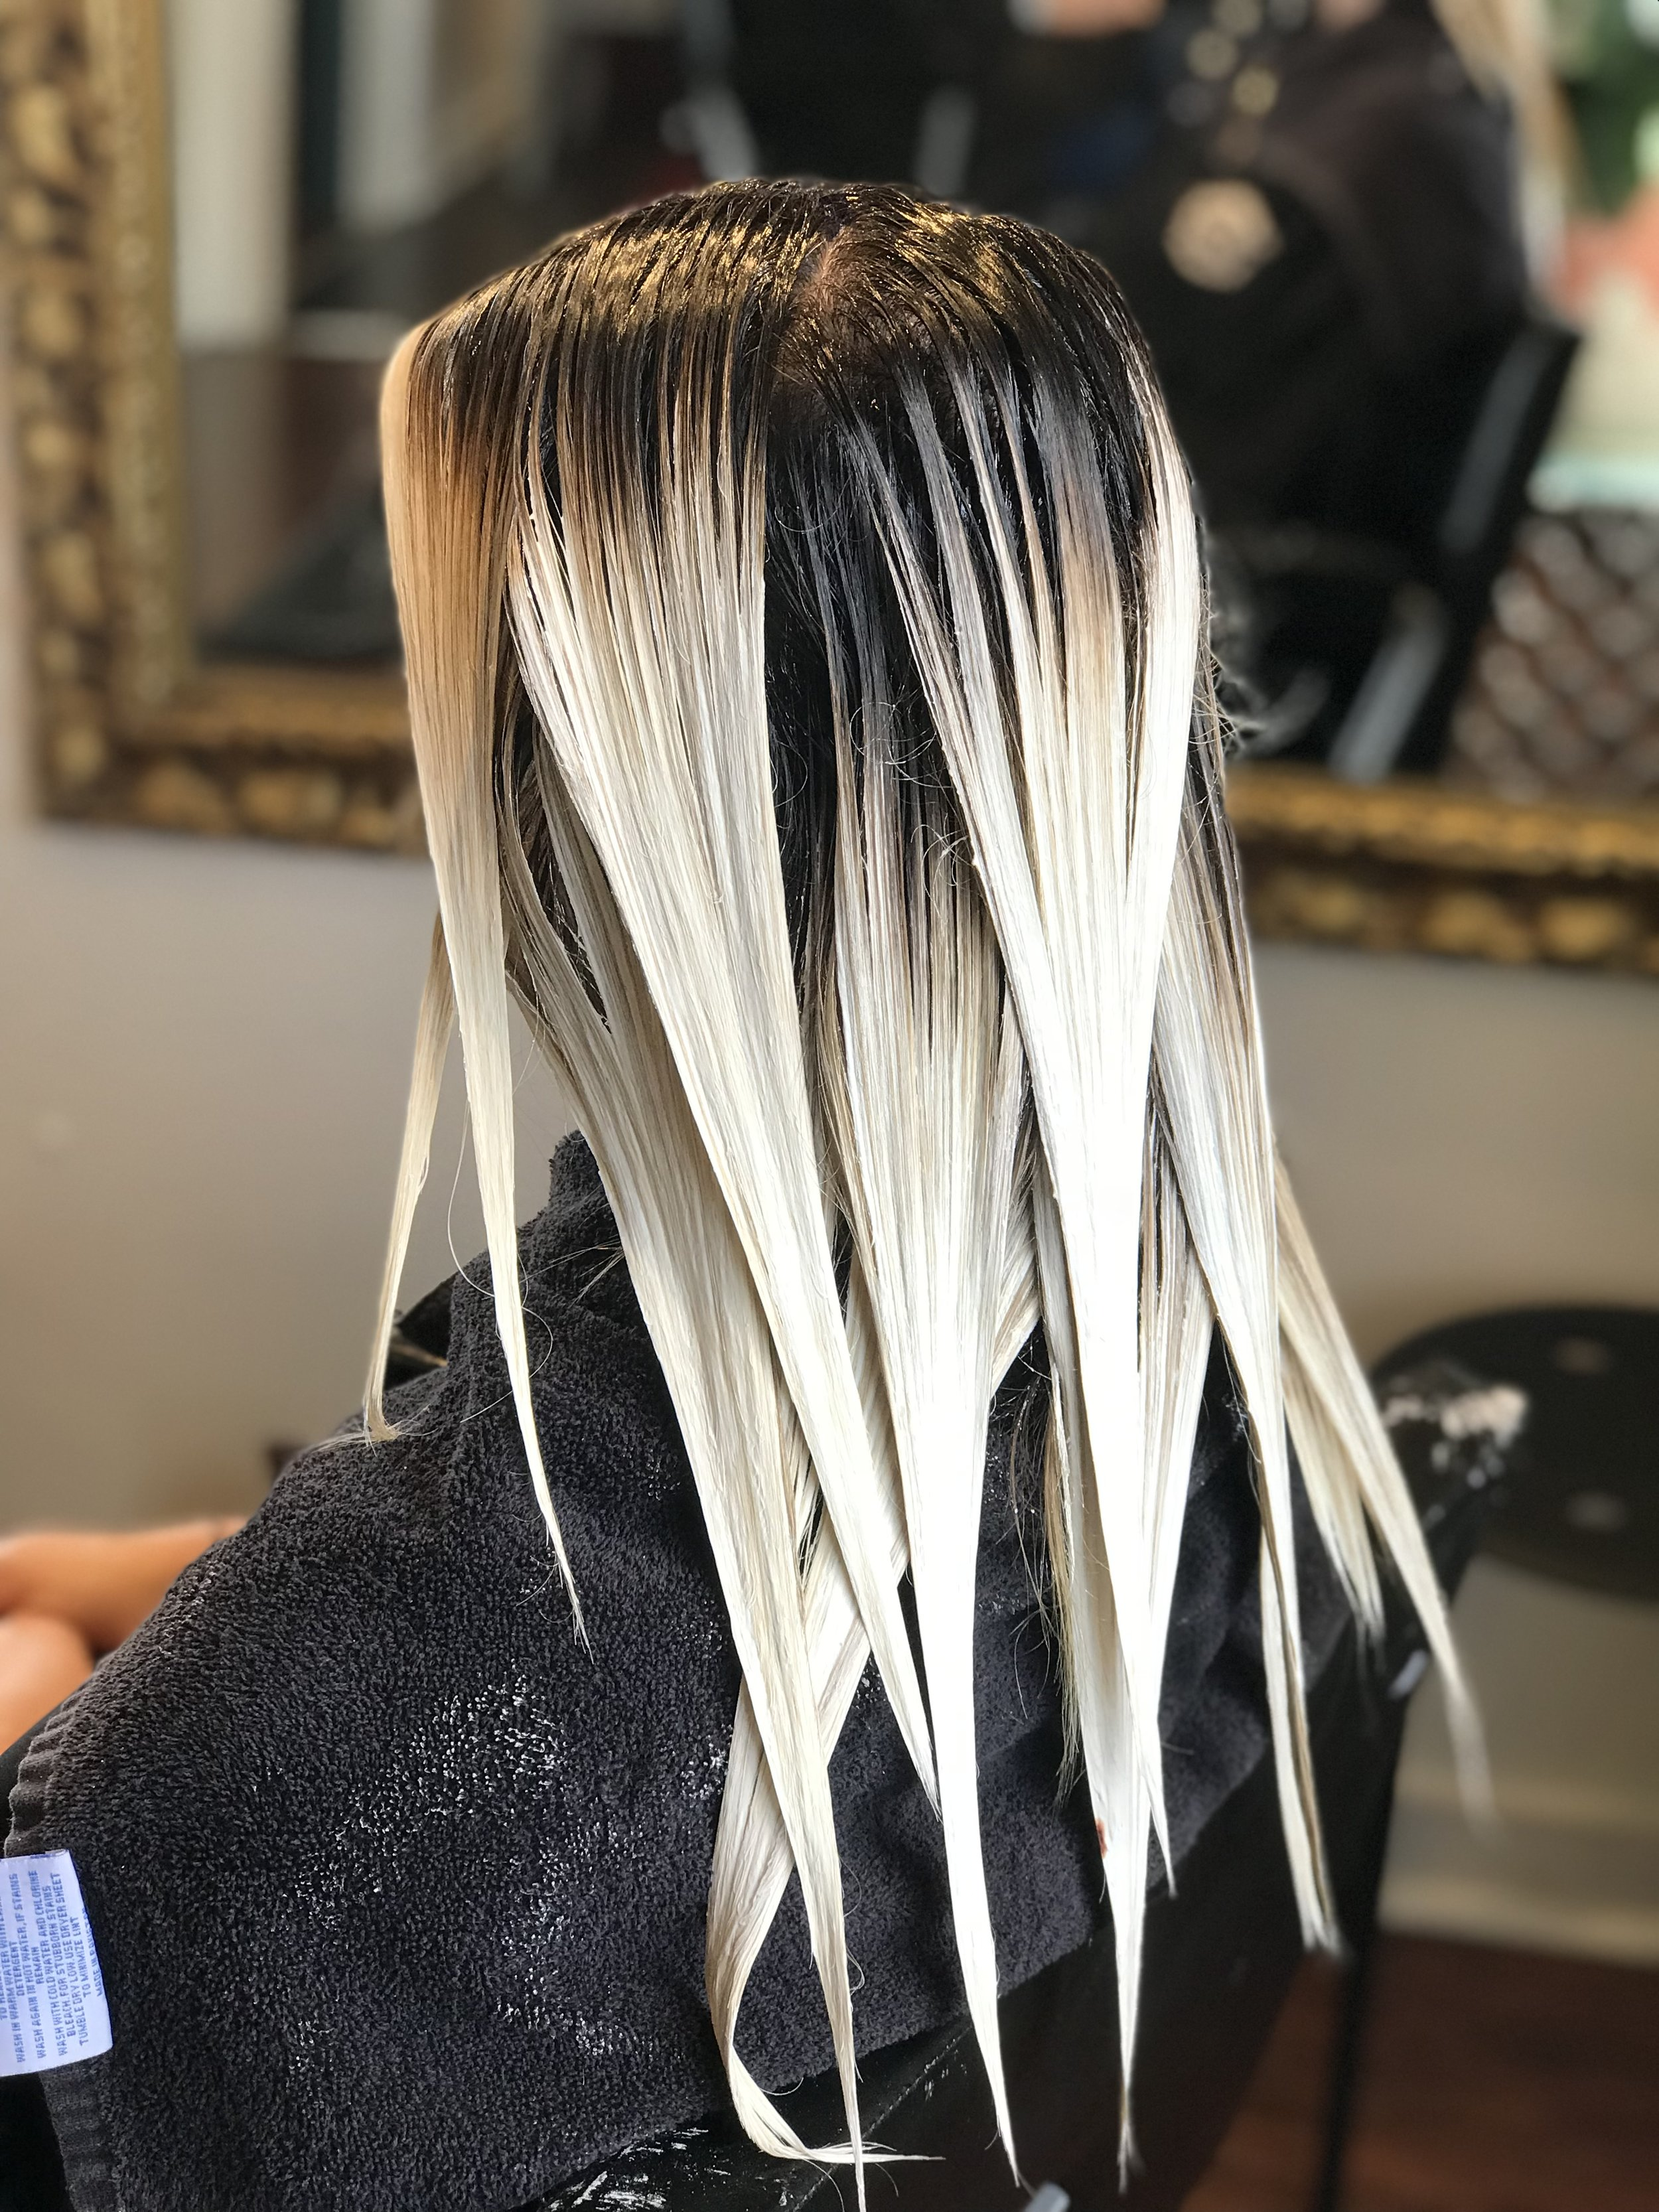 Hair by Chelsea Caruso | Master Hair Colorist, Expert Bayalage Painter, & Educator